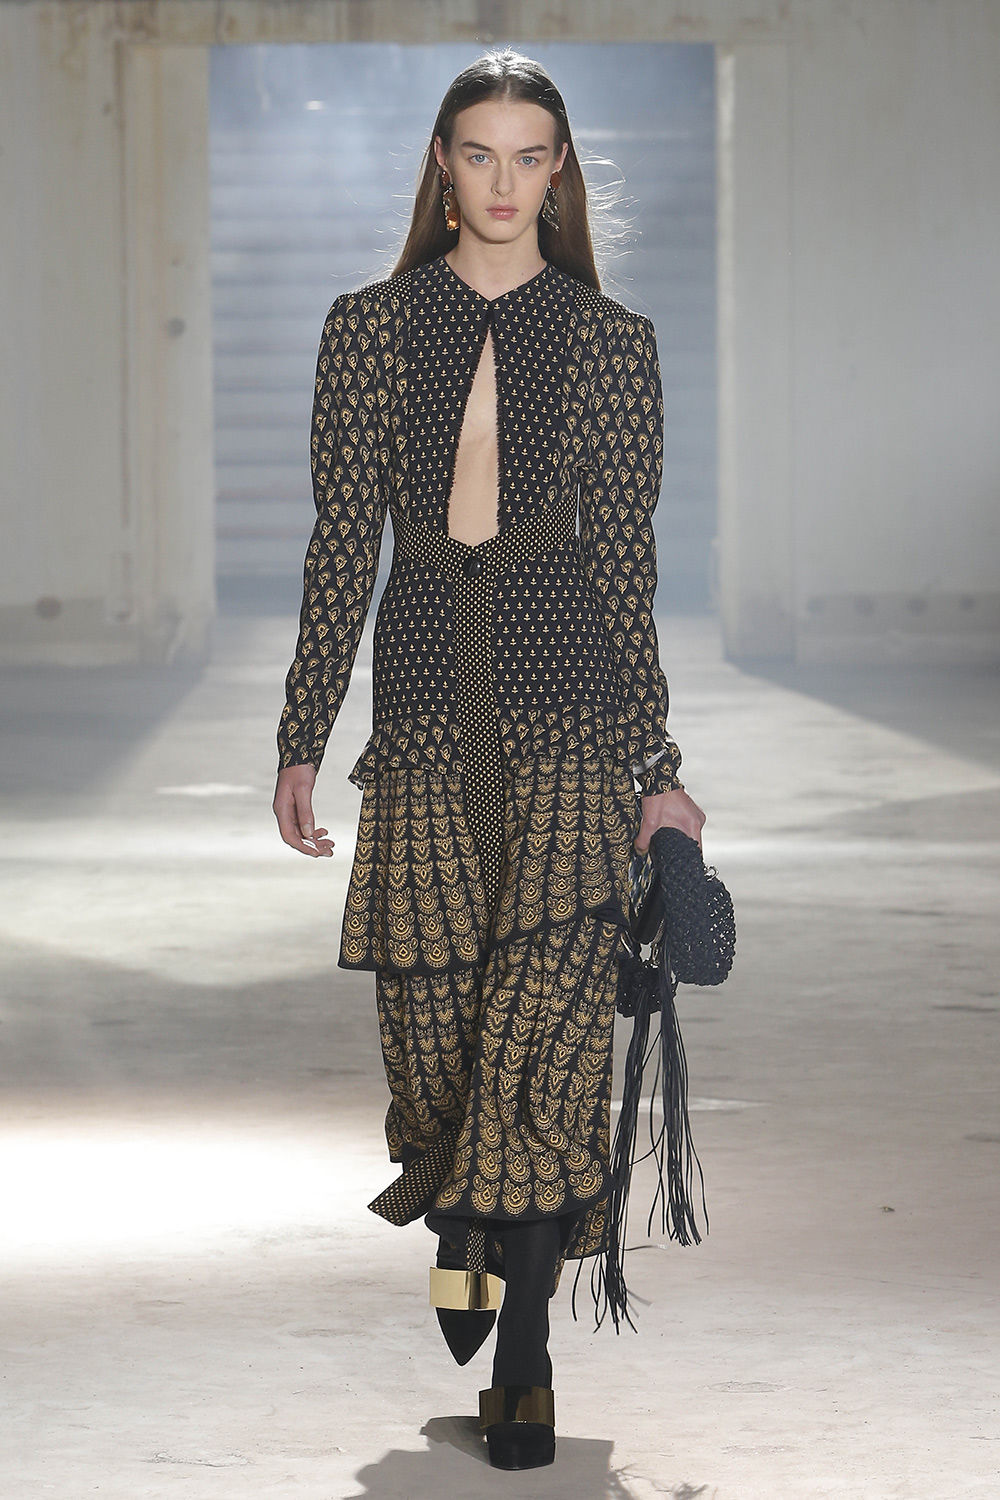 proenza schouler fall 2018 runway look 9